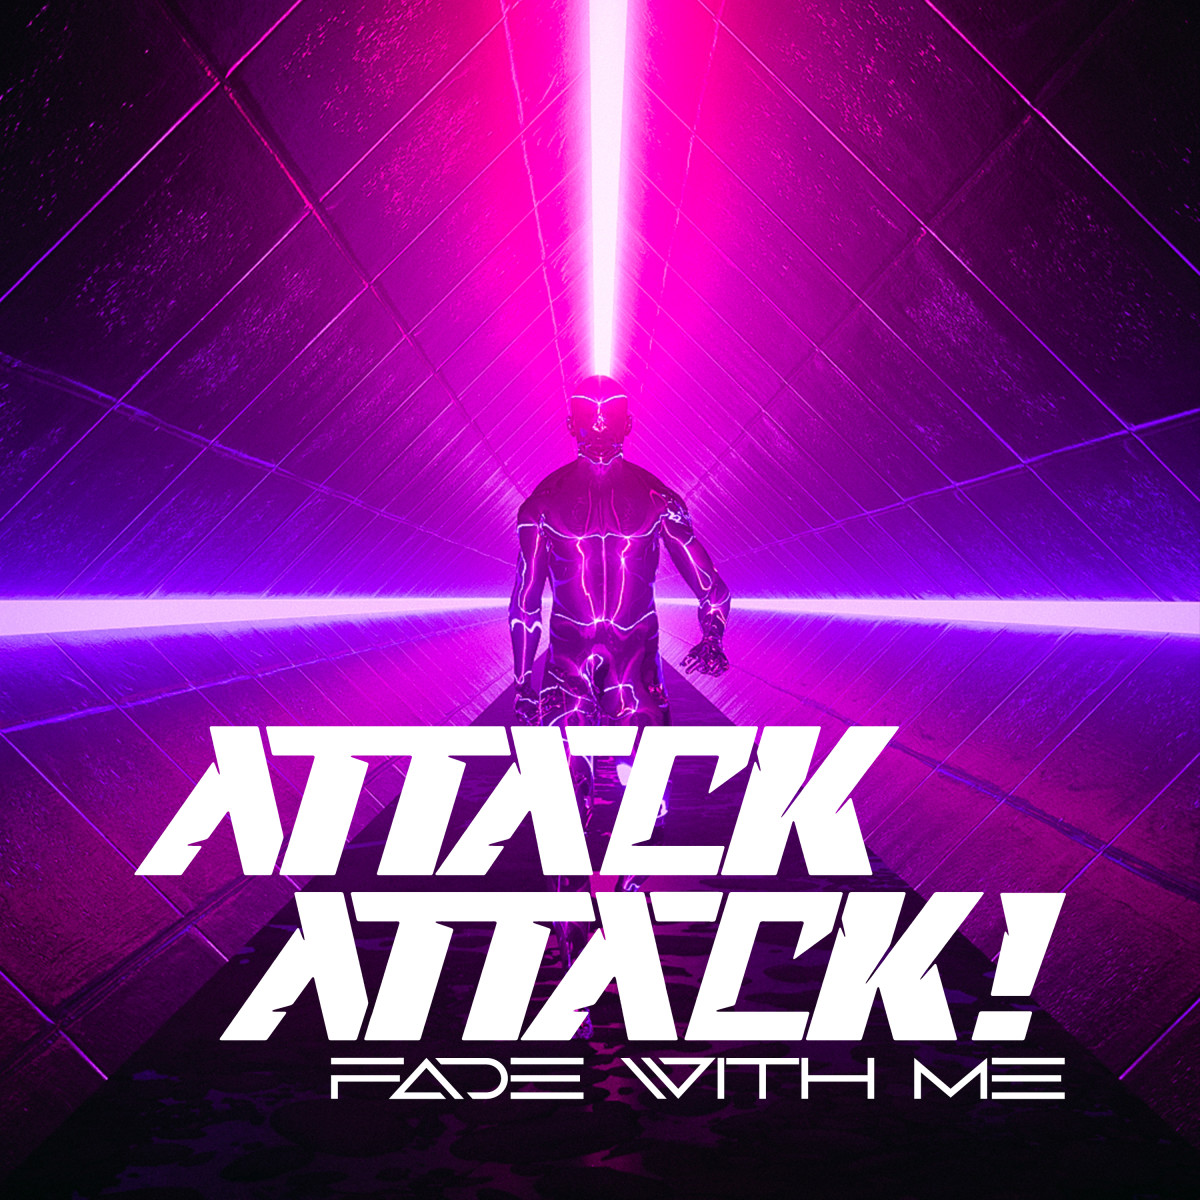 """Artwork for Attack Attack!'s new song """"Fade With Me."""""""